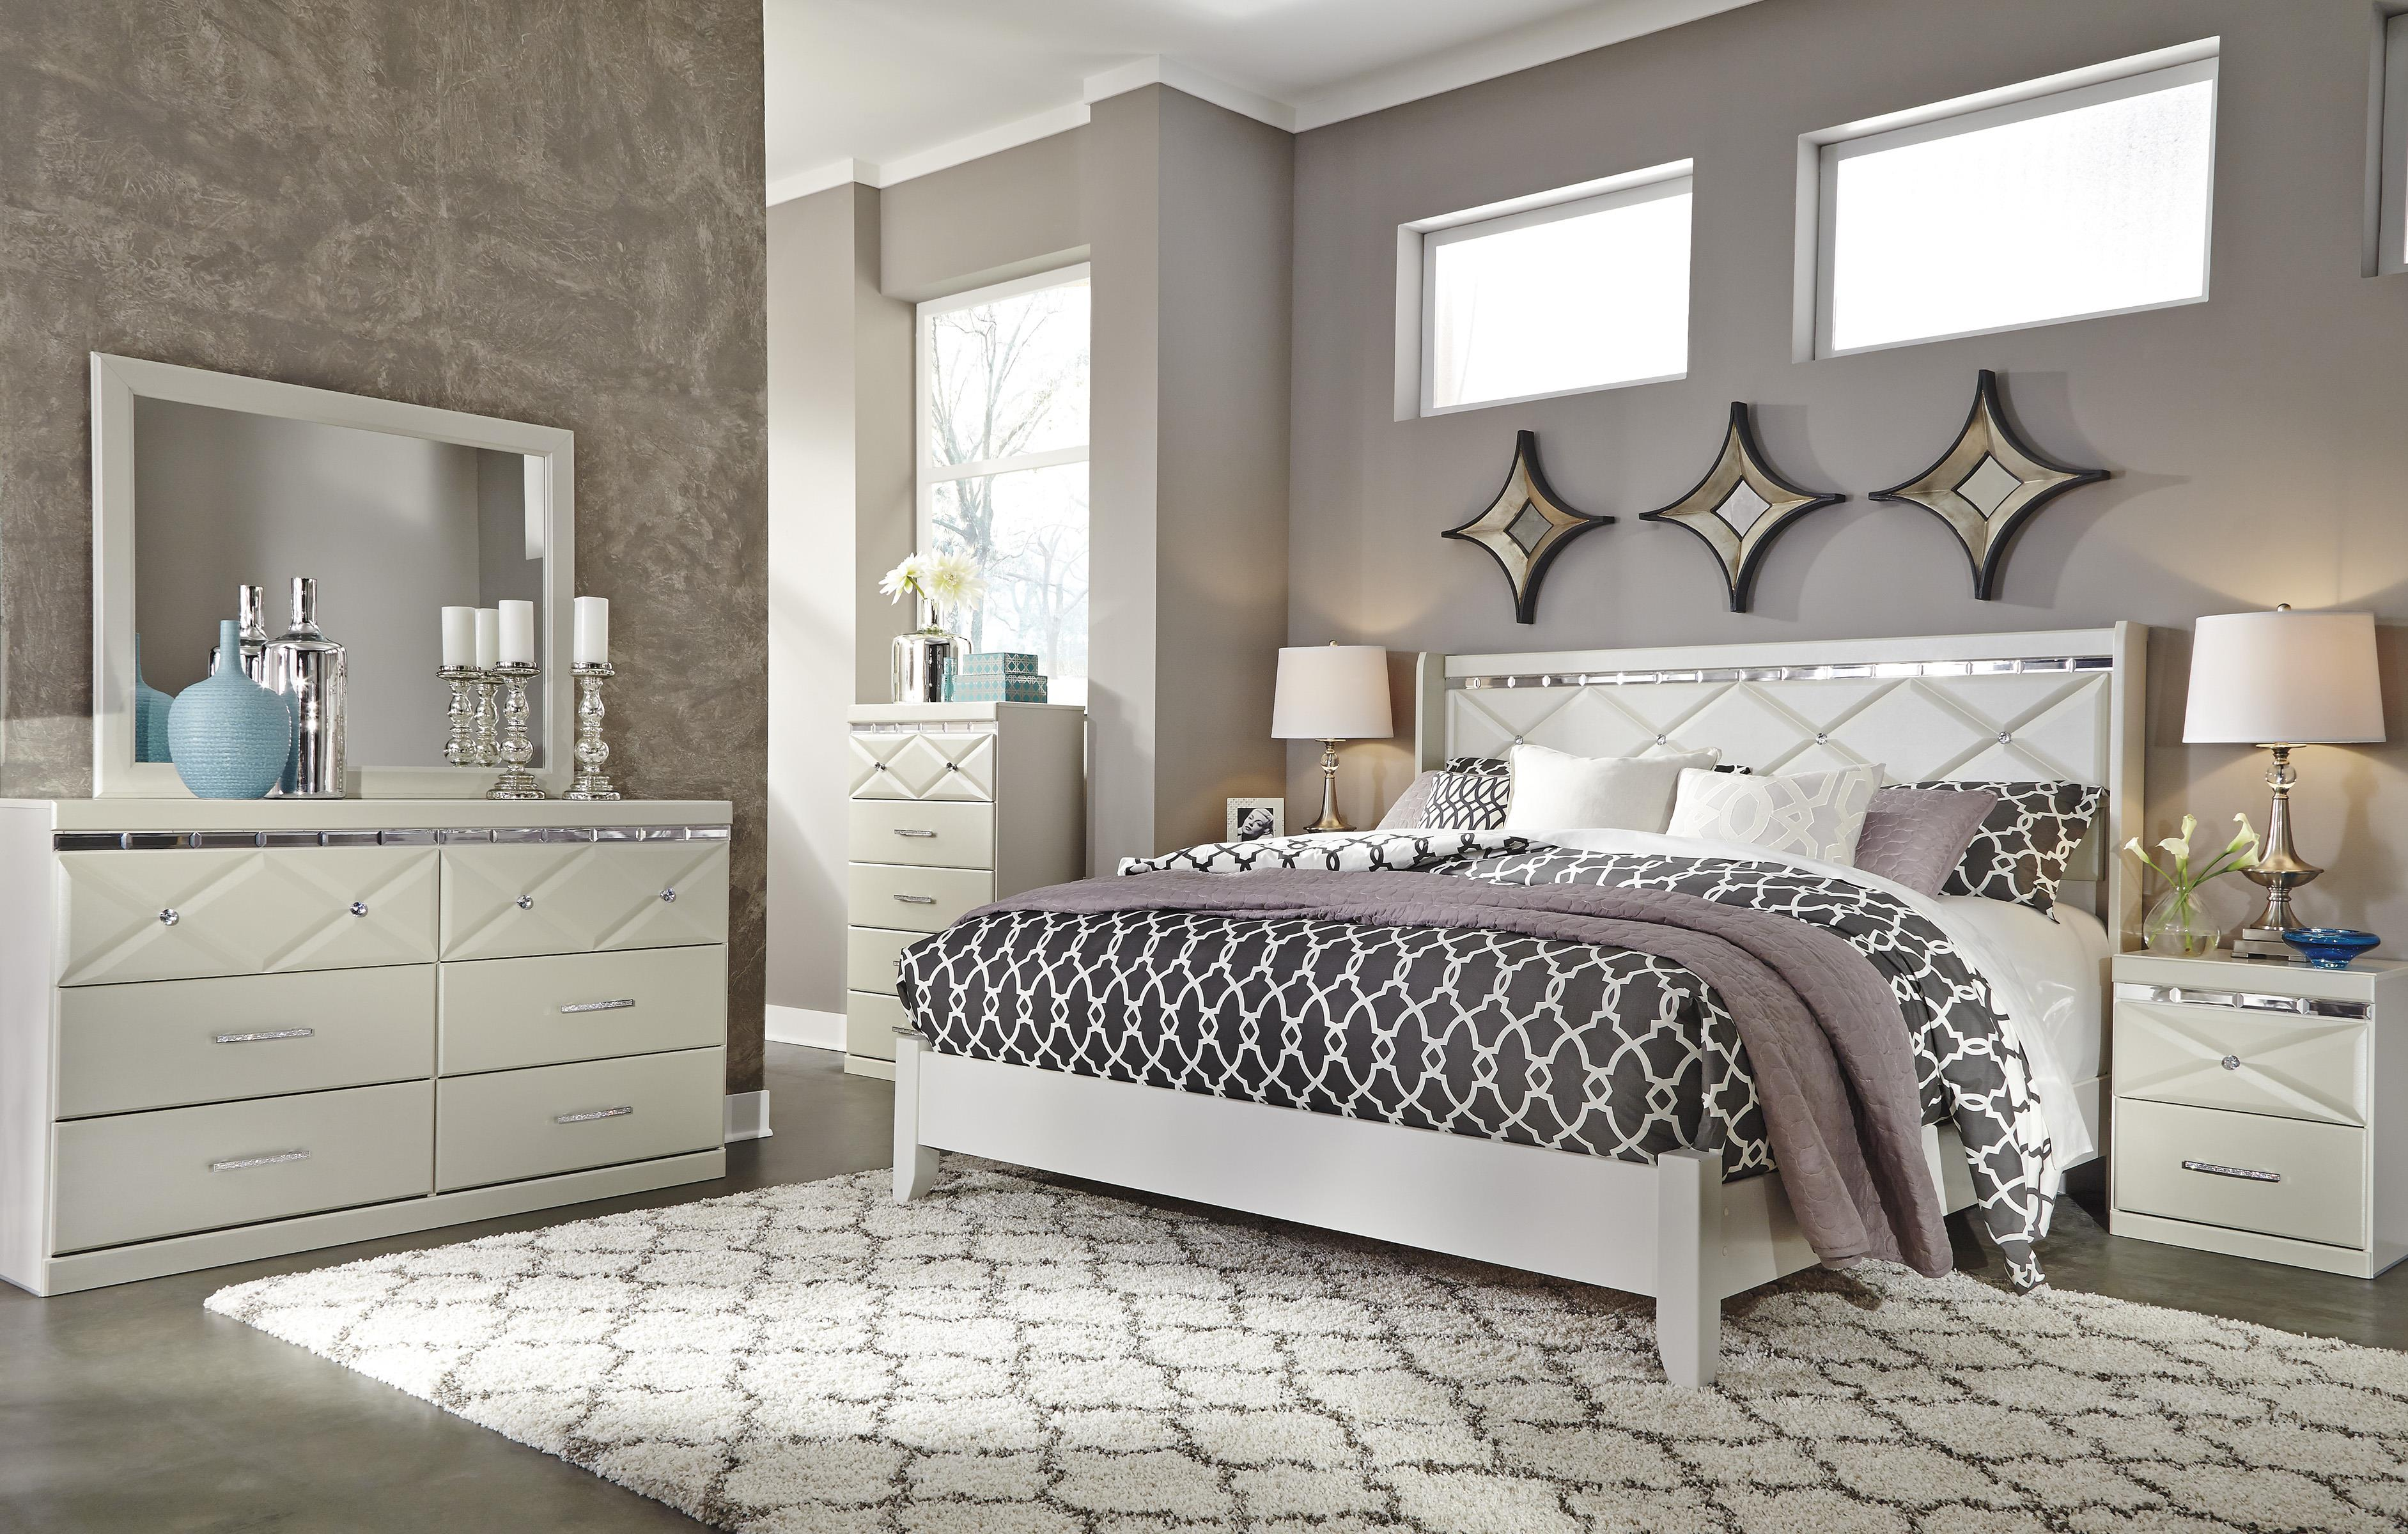 Signature Design By Ashley Dreamur B351 31 6 Drawer Dresser With Faux Crystal Accents Del Sol